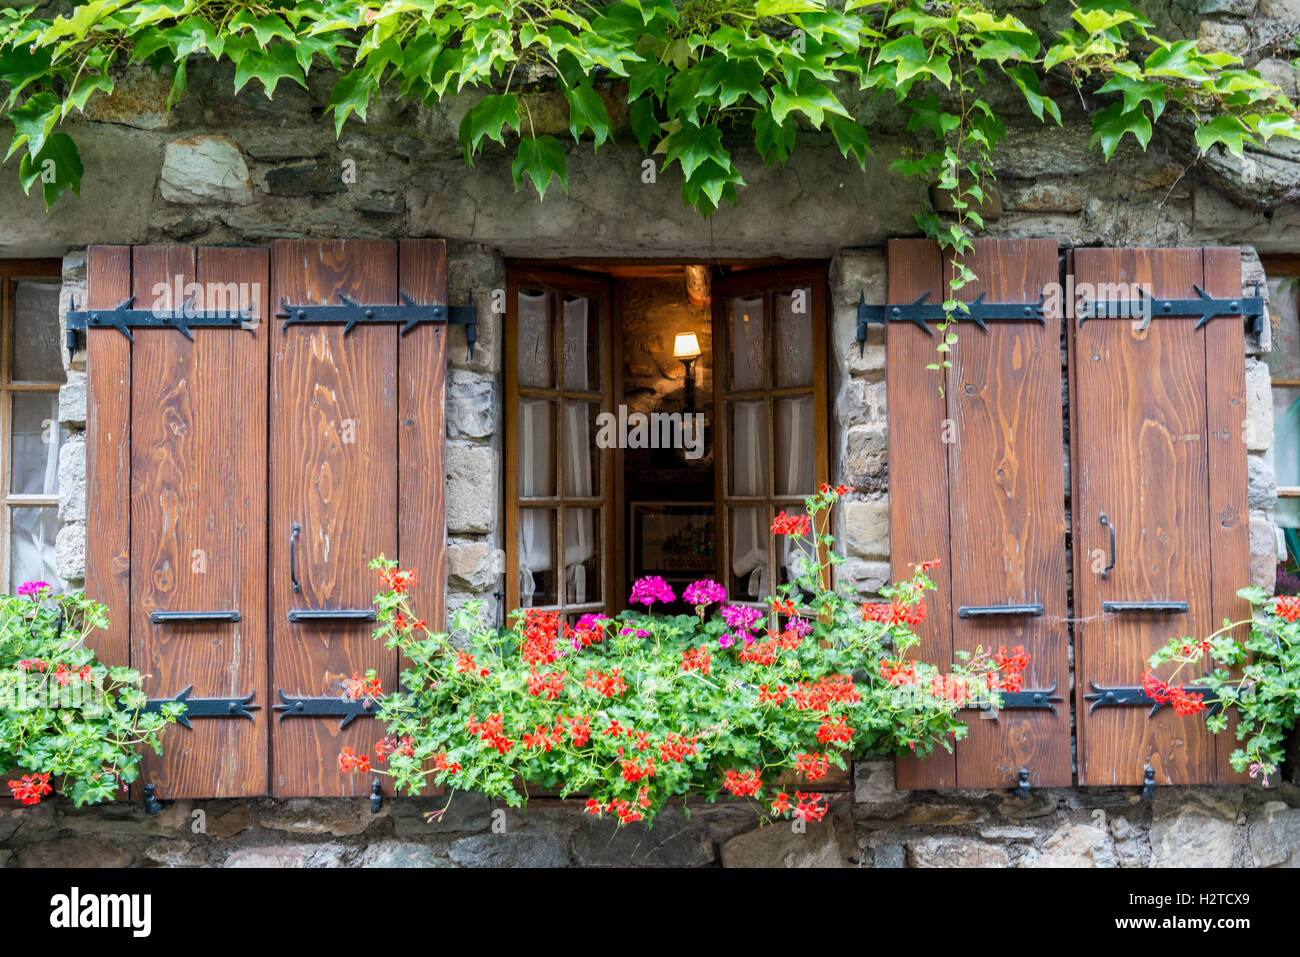 Ivy surrounding a window with shutters flower box, medieval historic village of Yvoire, Haute-Savoie, France - Stock Image